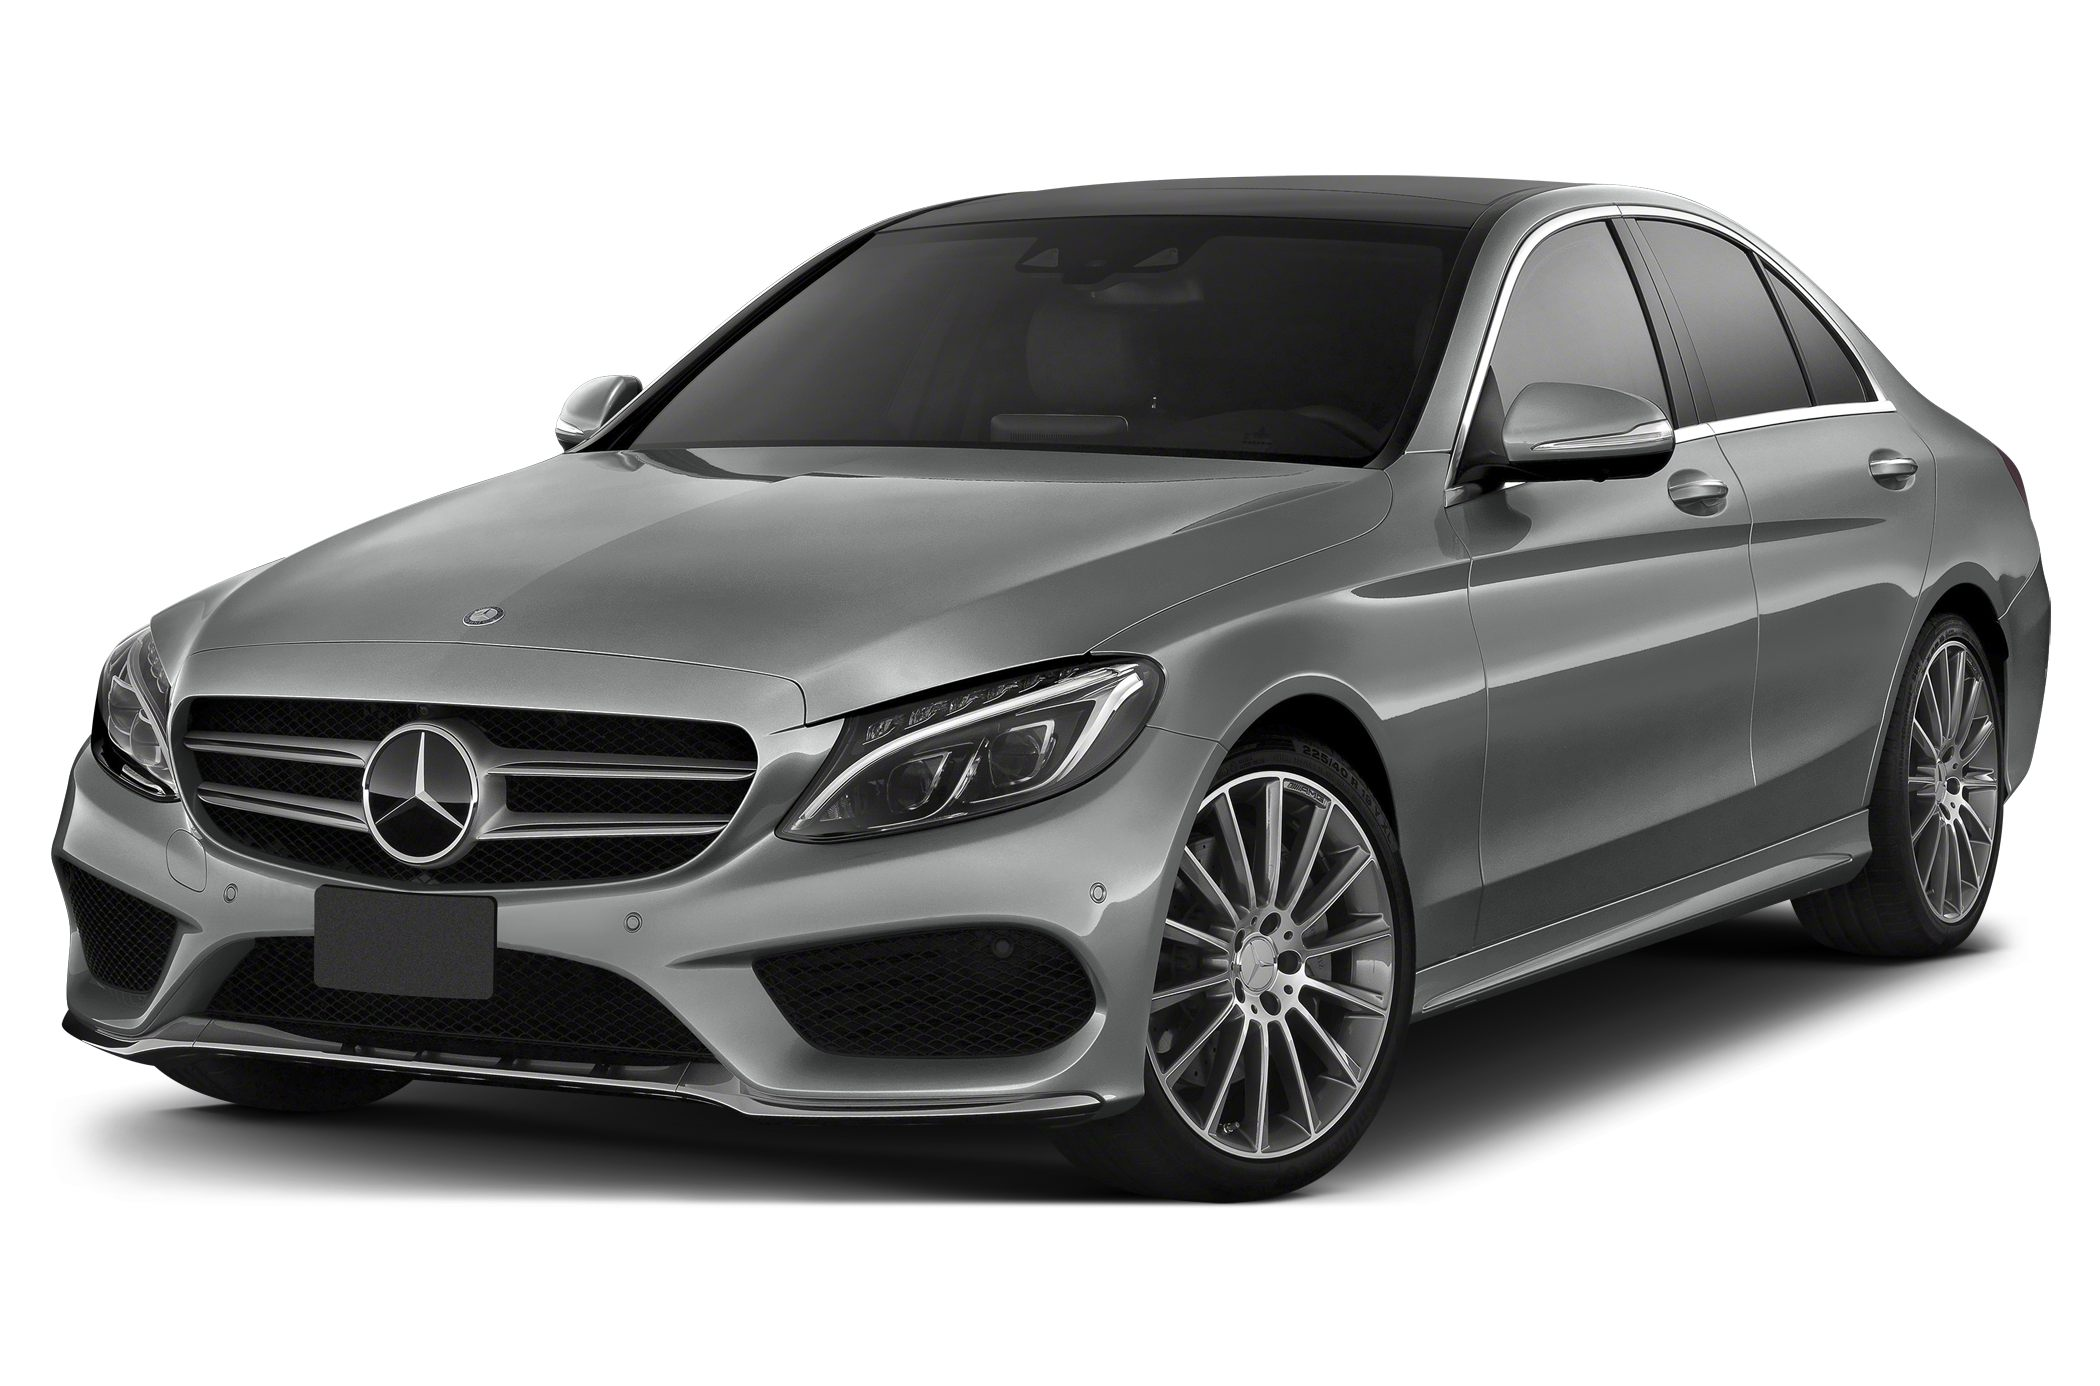 2015 Mercedes-Benz C-Class C300 Sedan for sale in Alexandria for $51,105 with 0 miles